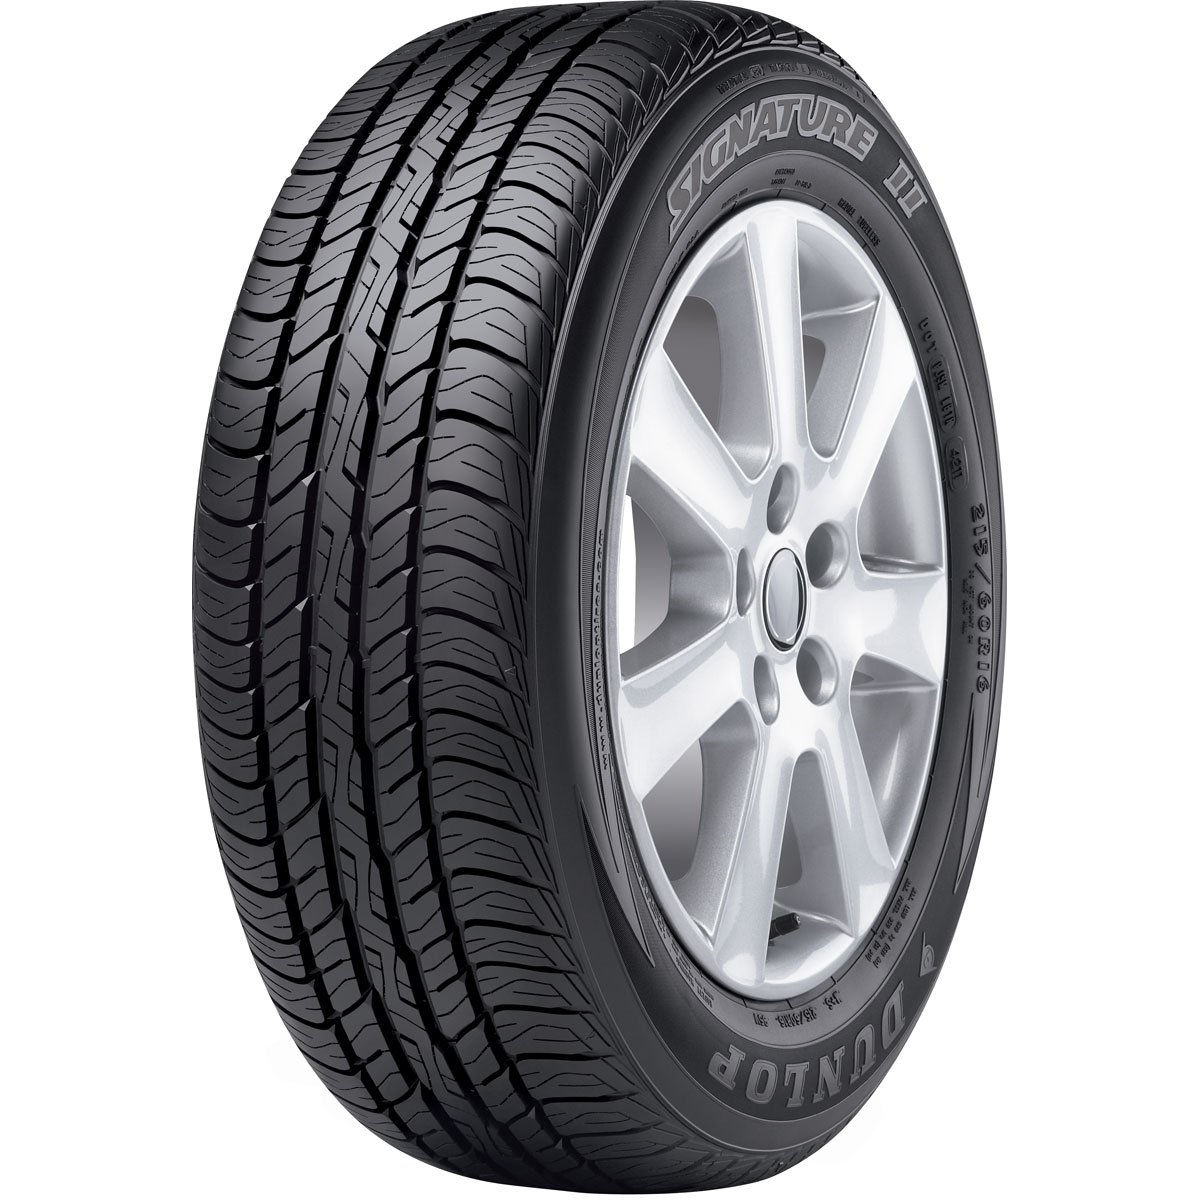 Dunlop Signature II P185/65R14 86T BW Tire 266004822 by Dunlop (Image #2)